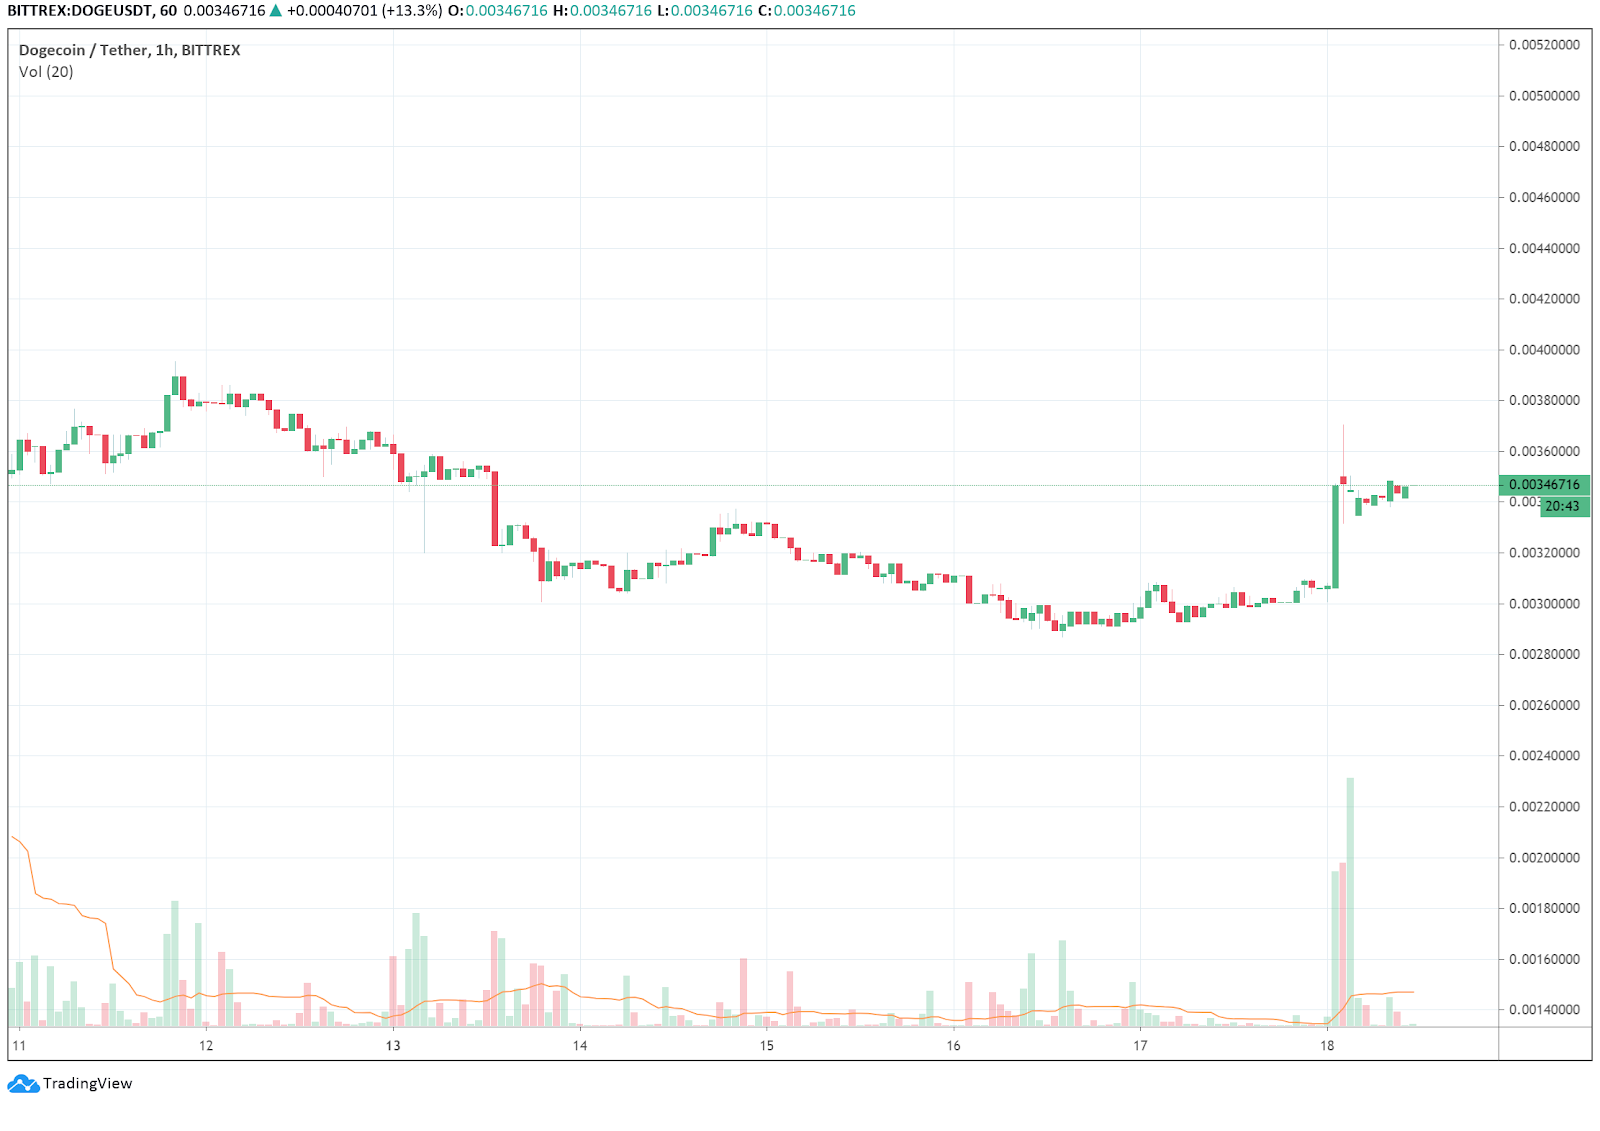 The DOGE price rose 14% that day